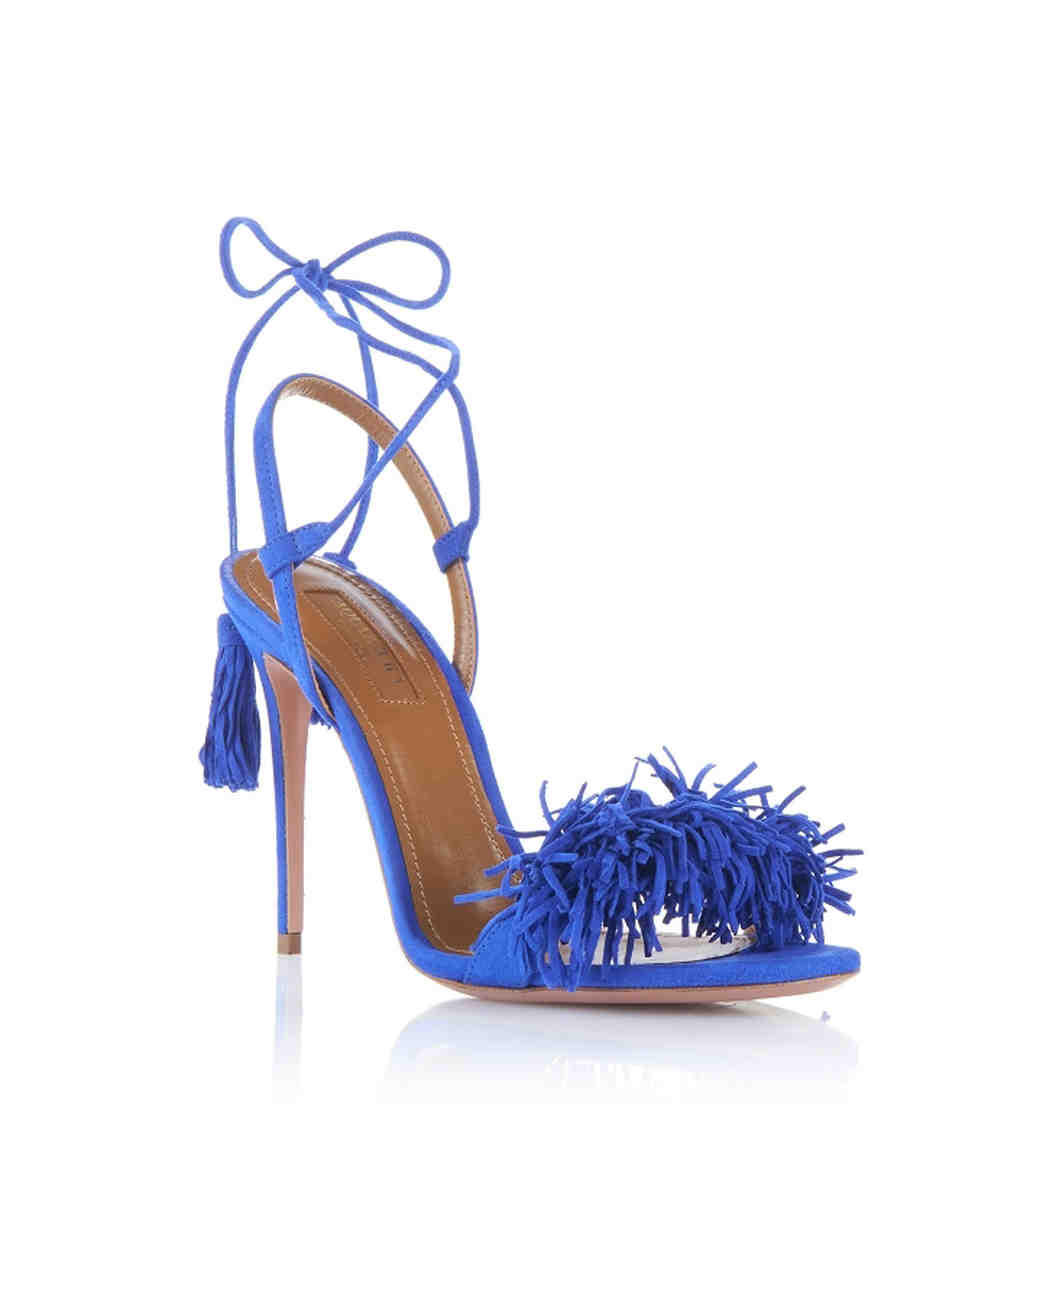 Aquazzura Royal Blue Evening Shoes with fringe